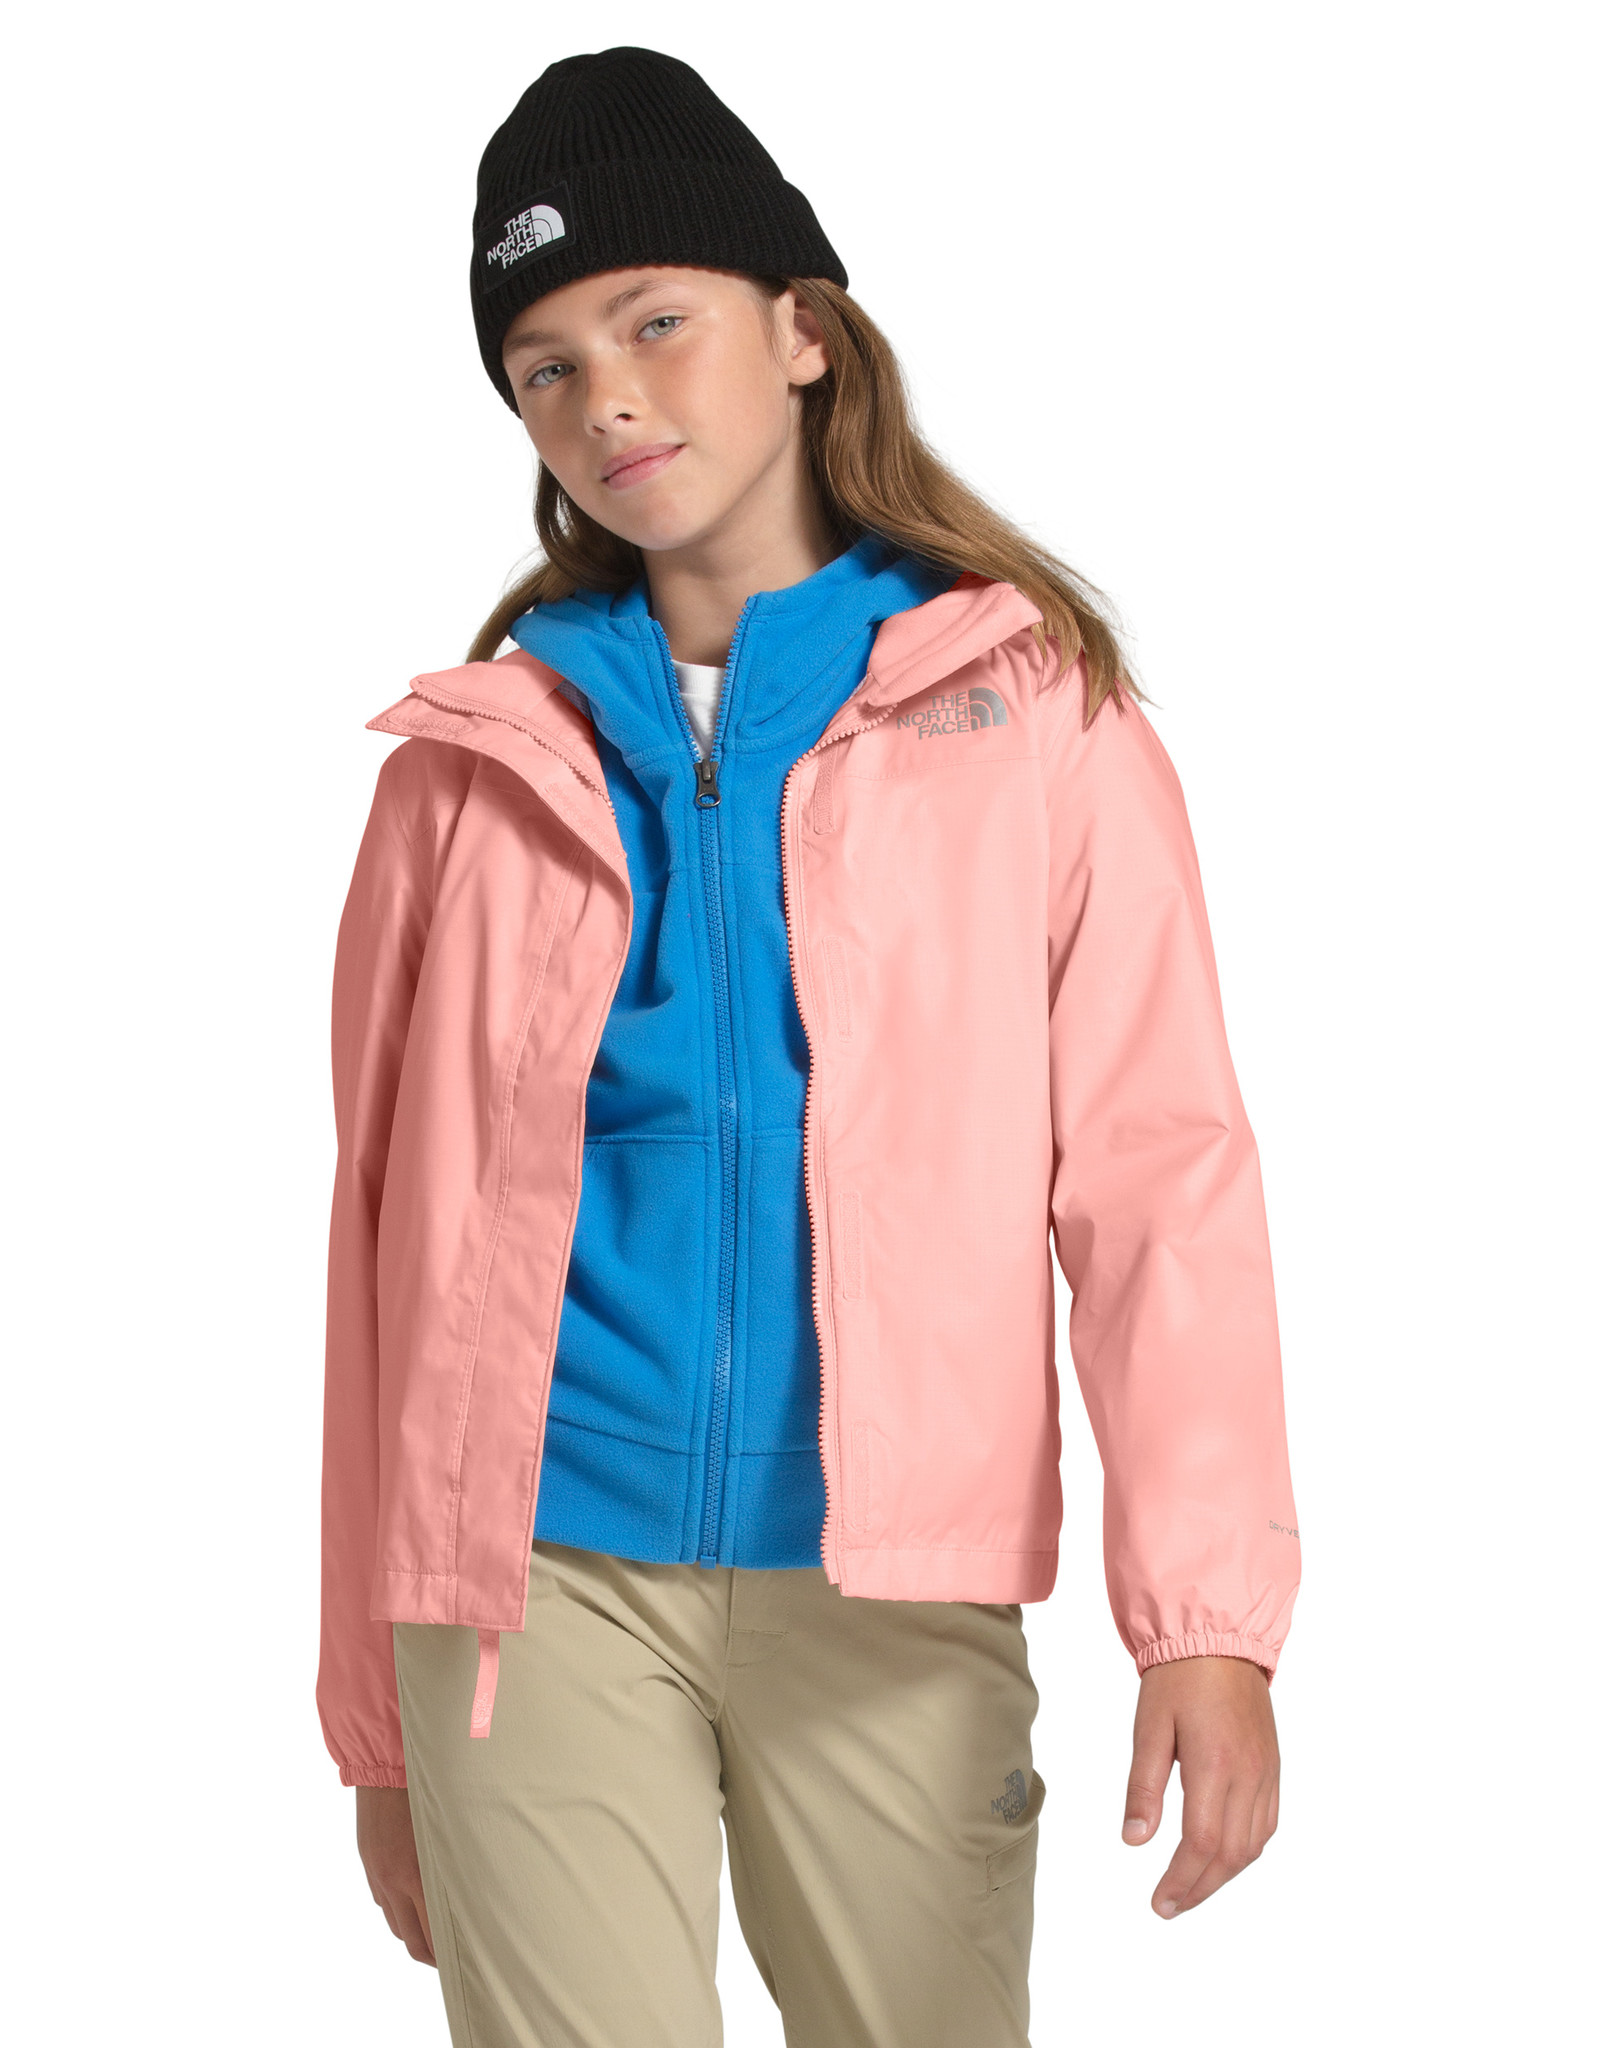 The North Face The North Face Girl's Resolve Reflective Jacket - S2020